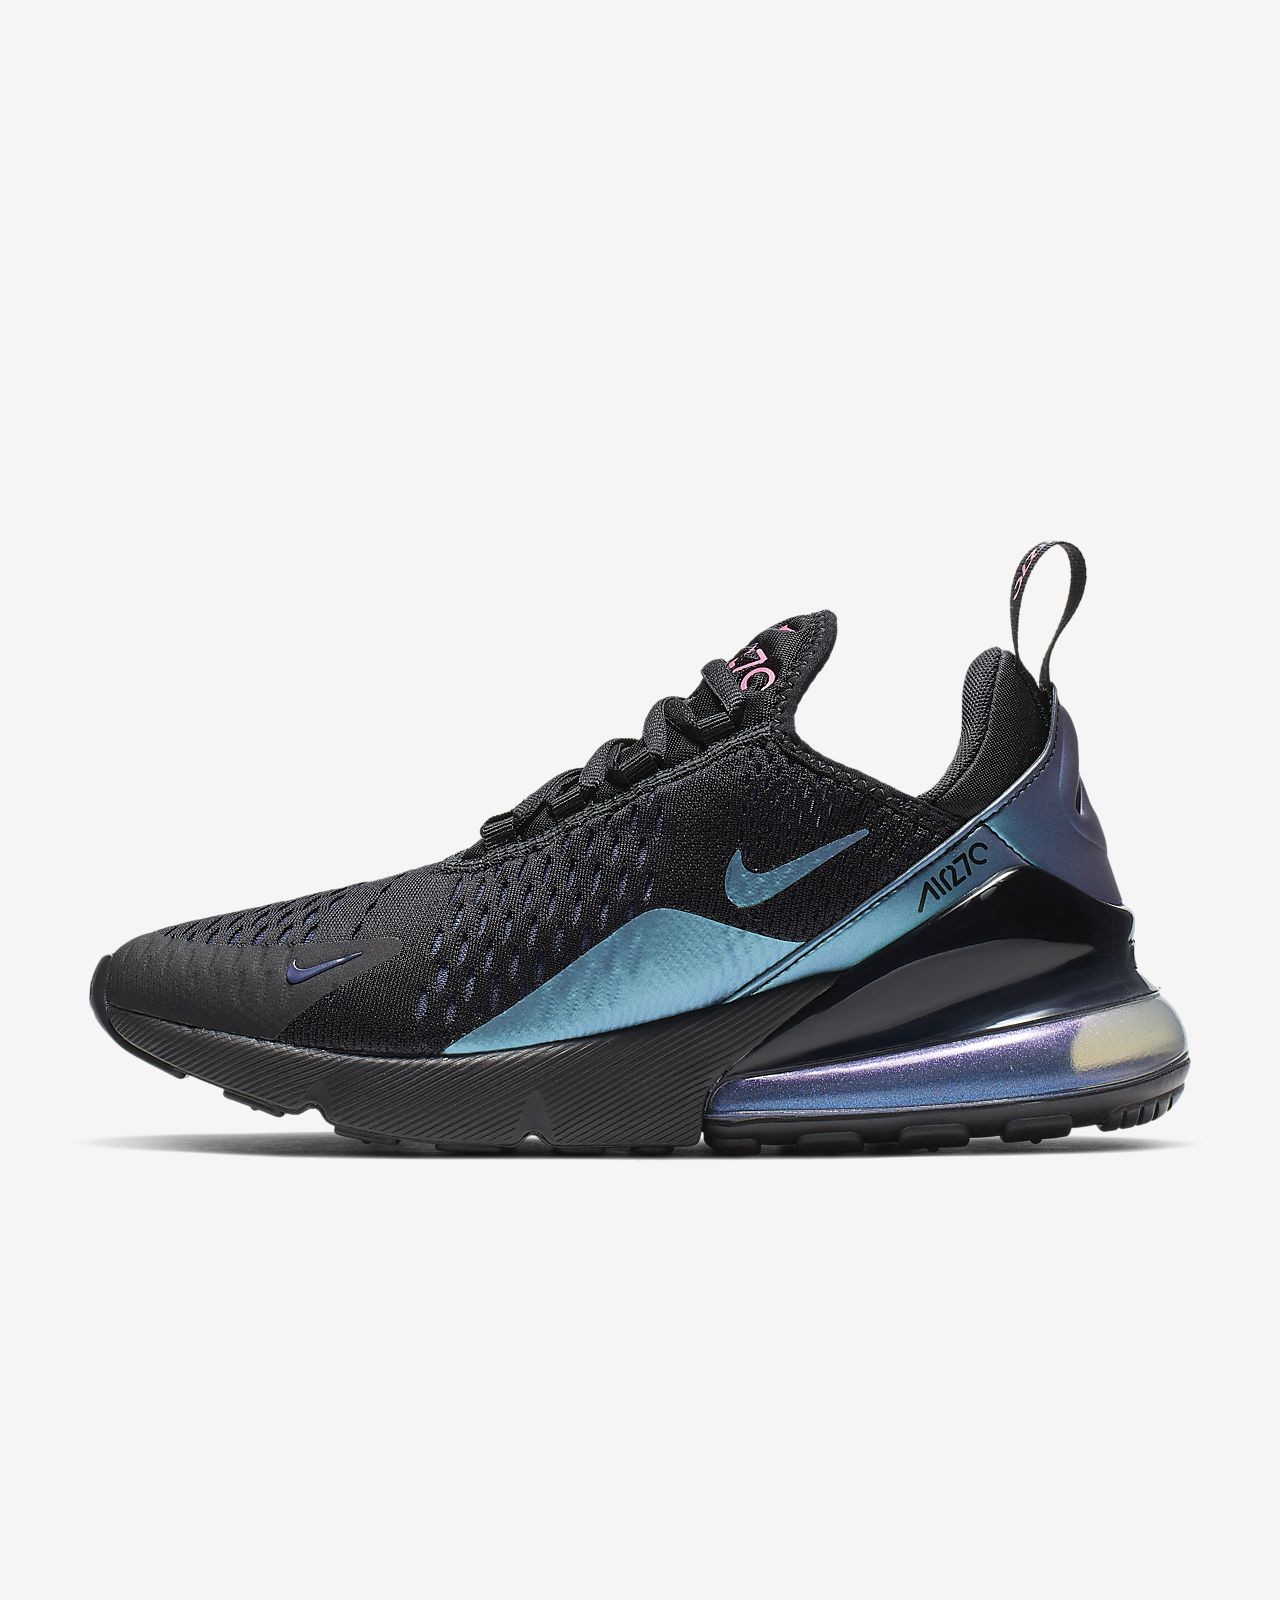 official photos 97b52 7e1b8 ... Nike Air Max 270 Zapatillas - Mujer